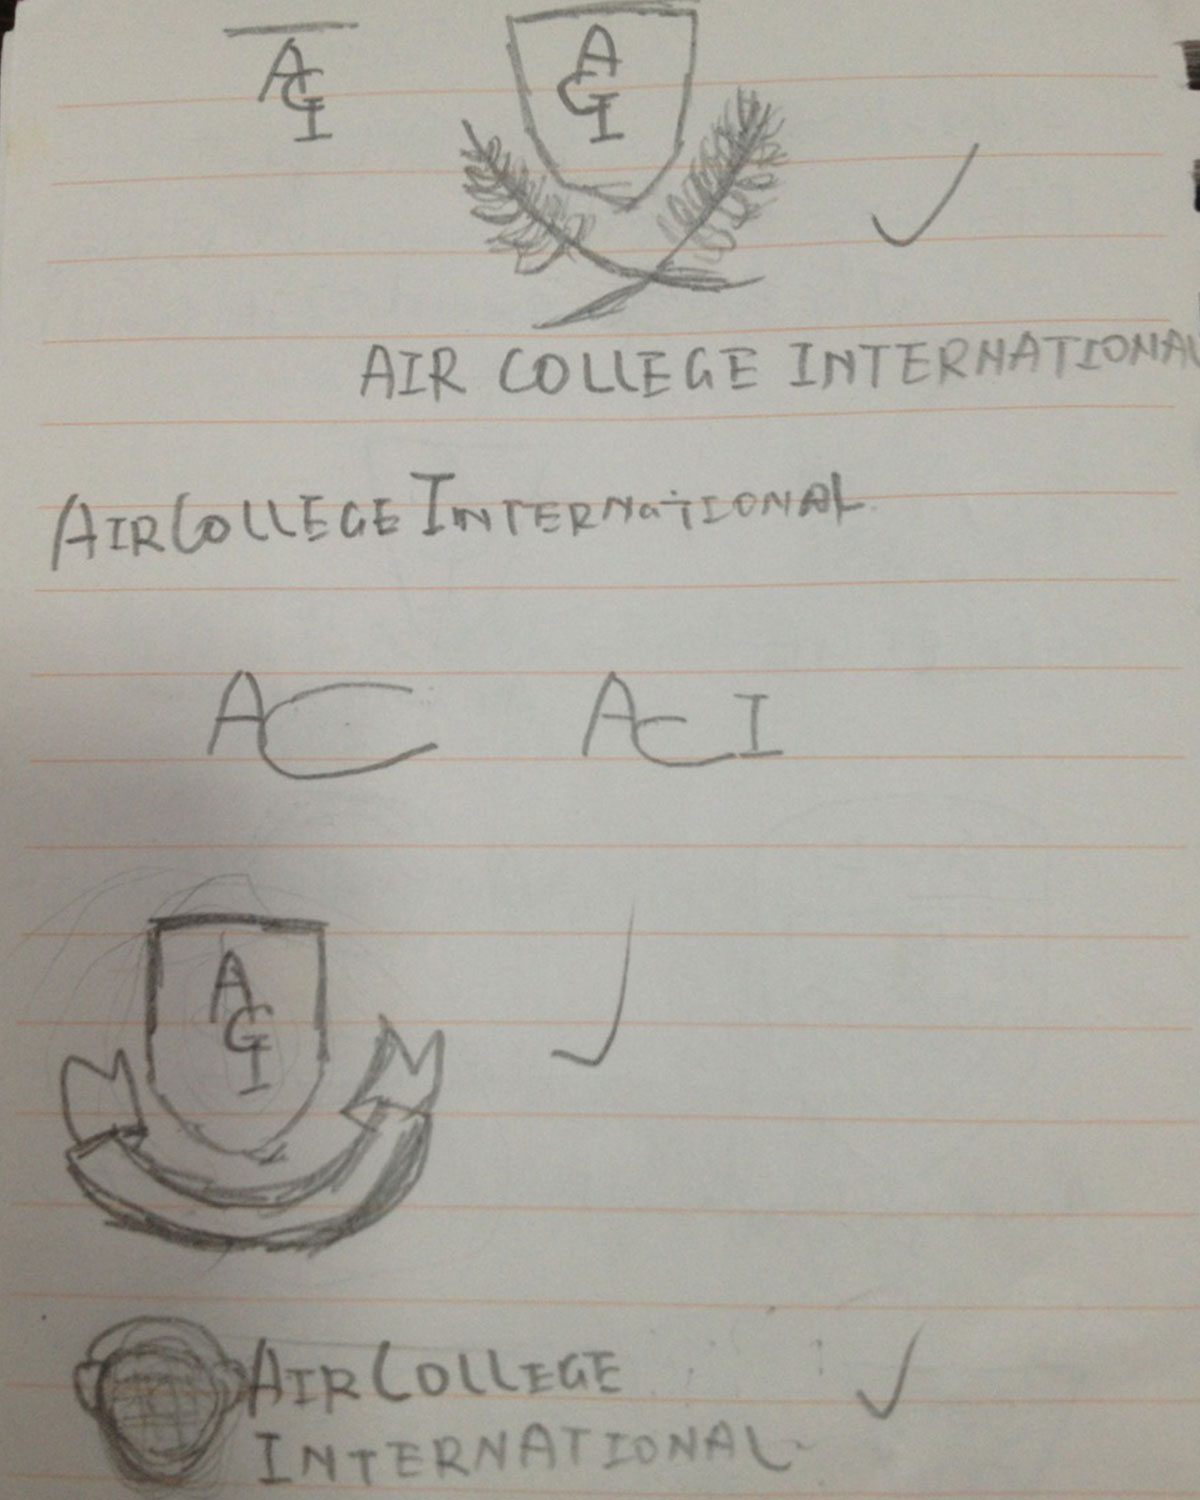 Air College International - Stakeholder's initial rough sketches 1